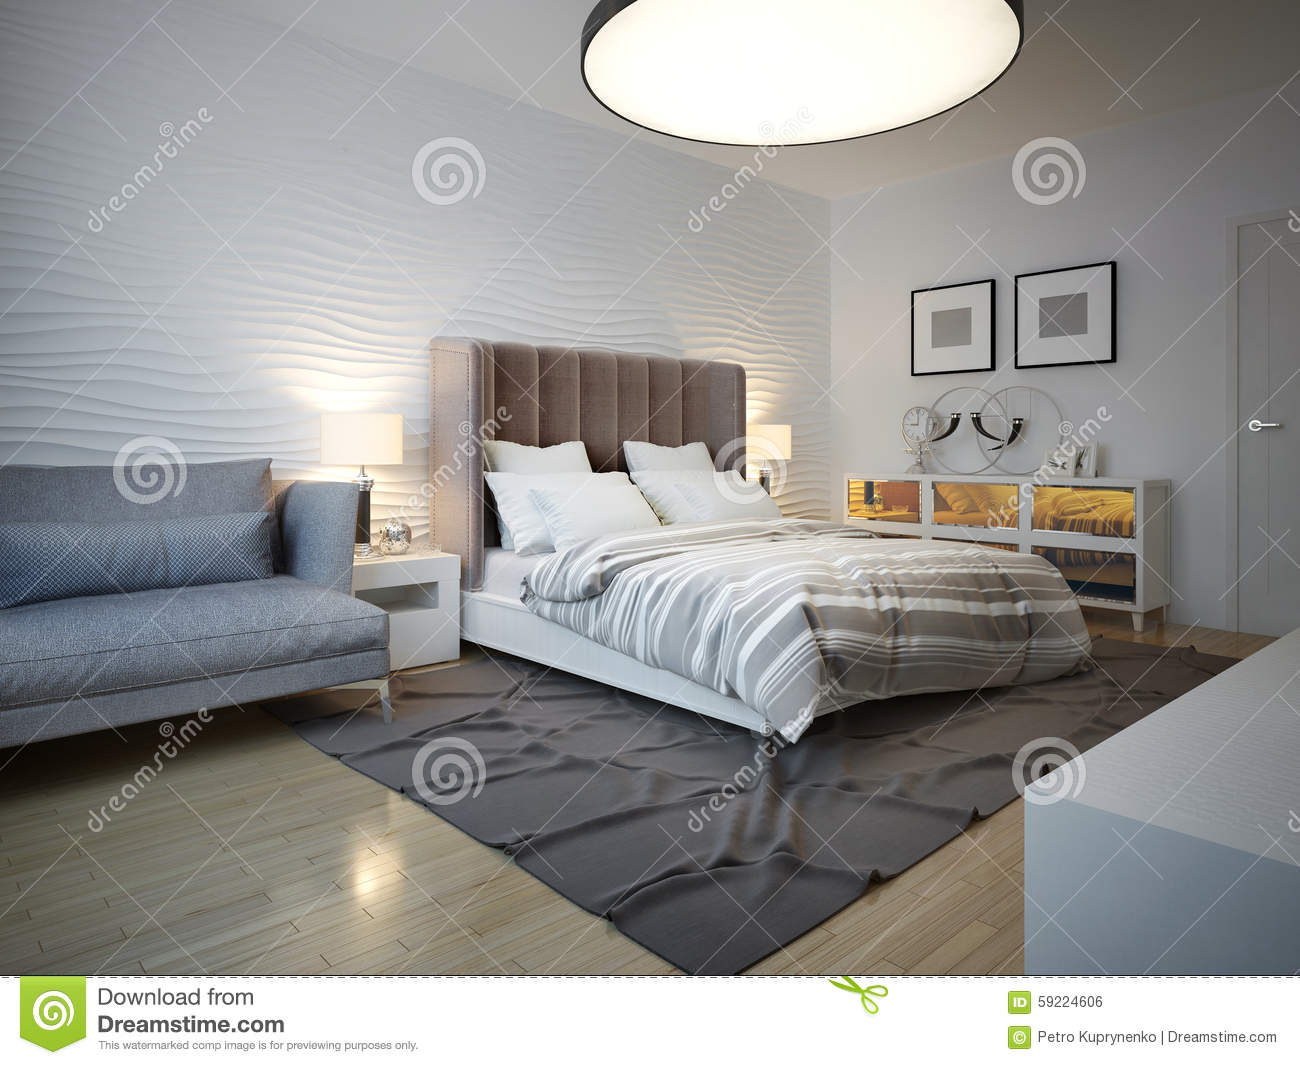 Bedroom art deco style with large ceiling lamp stock photo for Lampadario camera da letto ikea